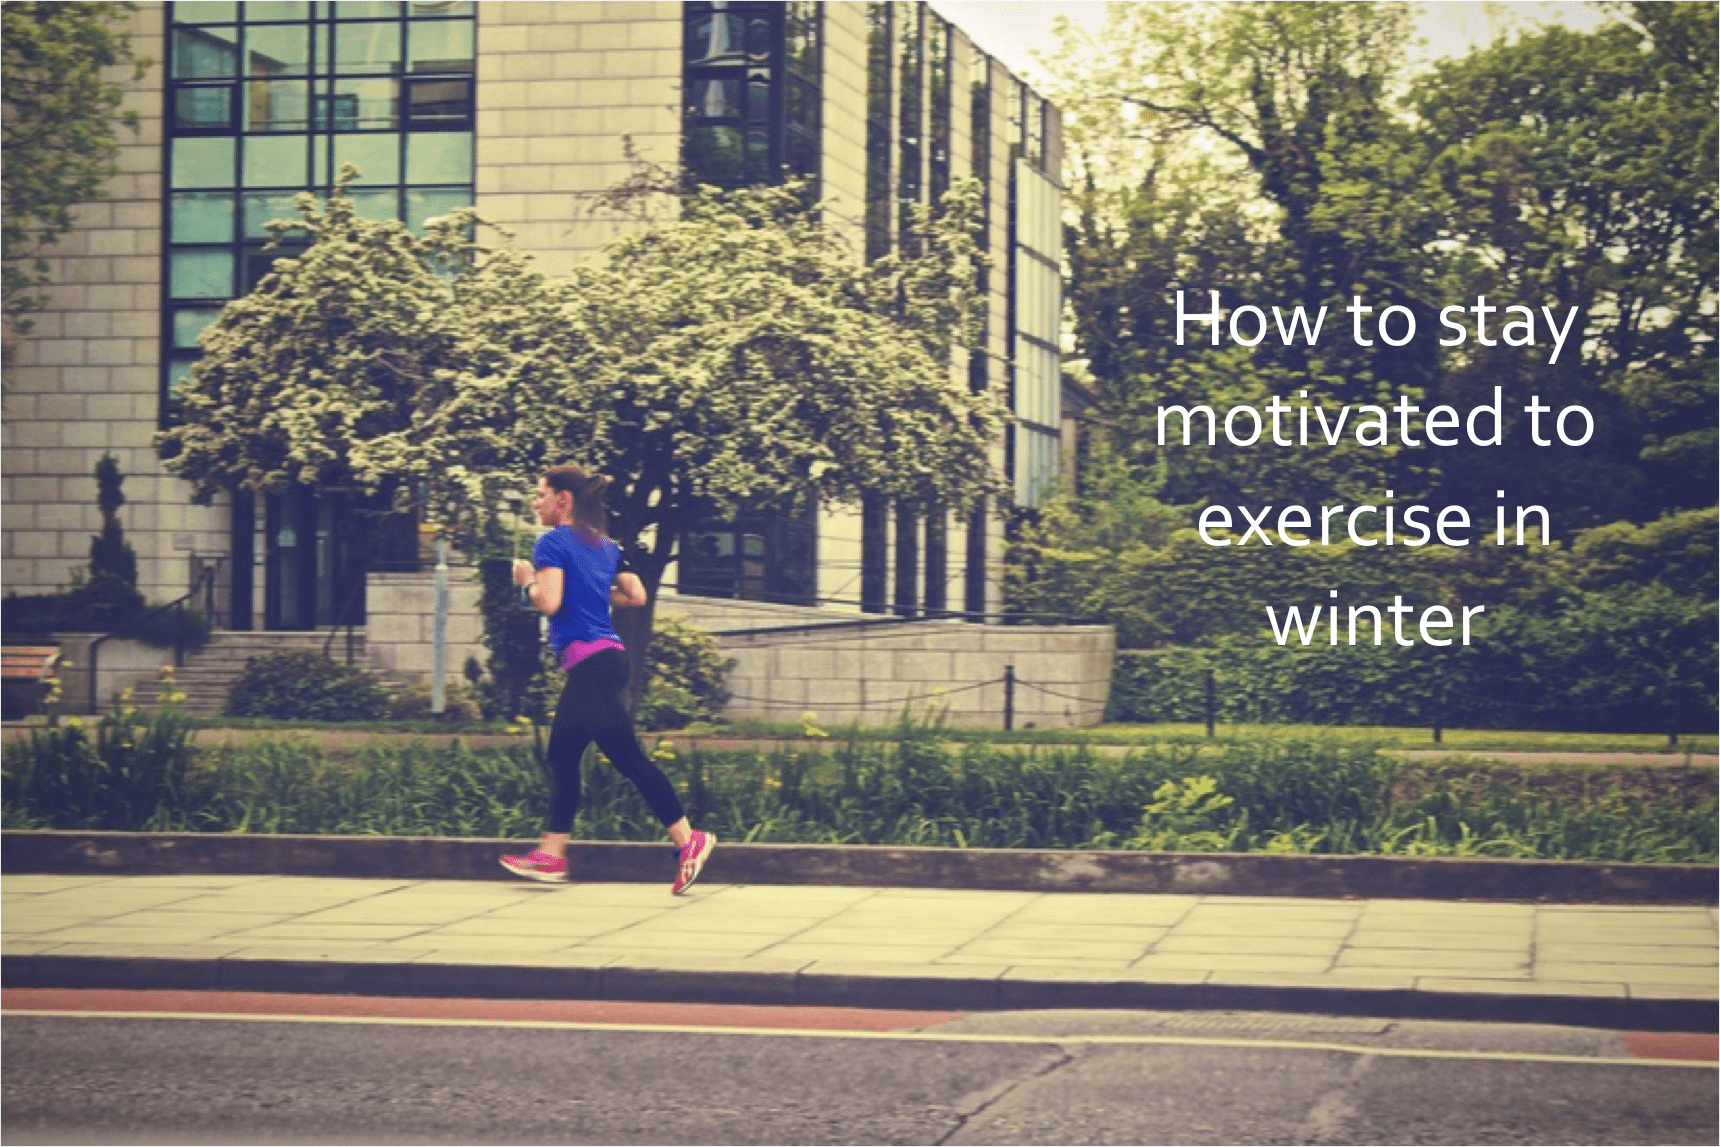 How to keep motivated to exercise in winter